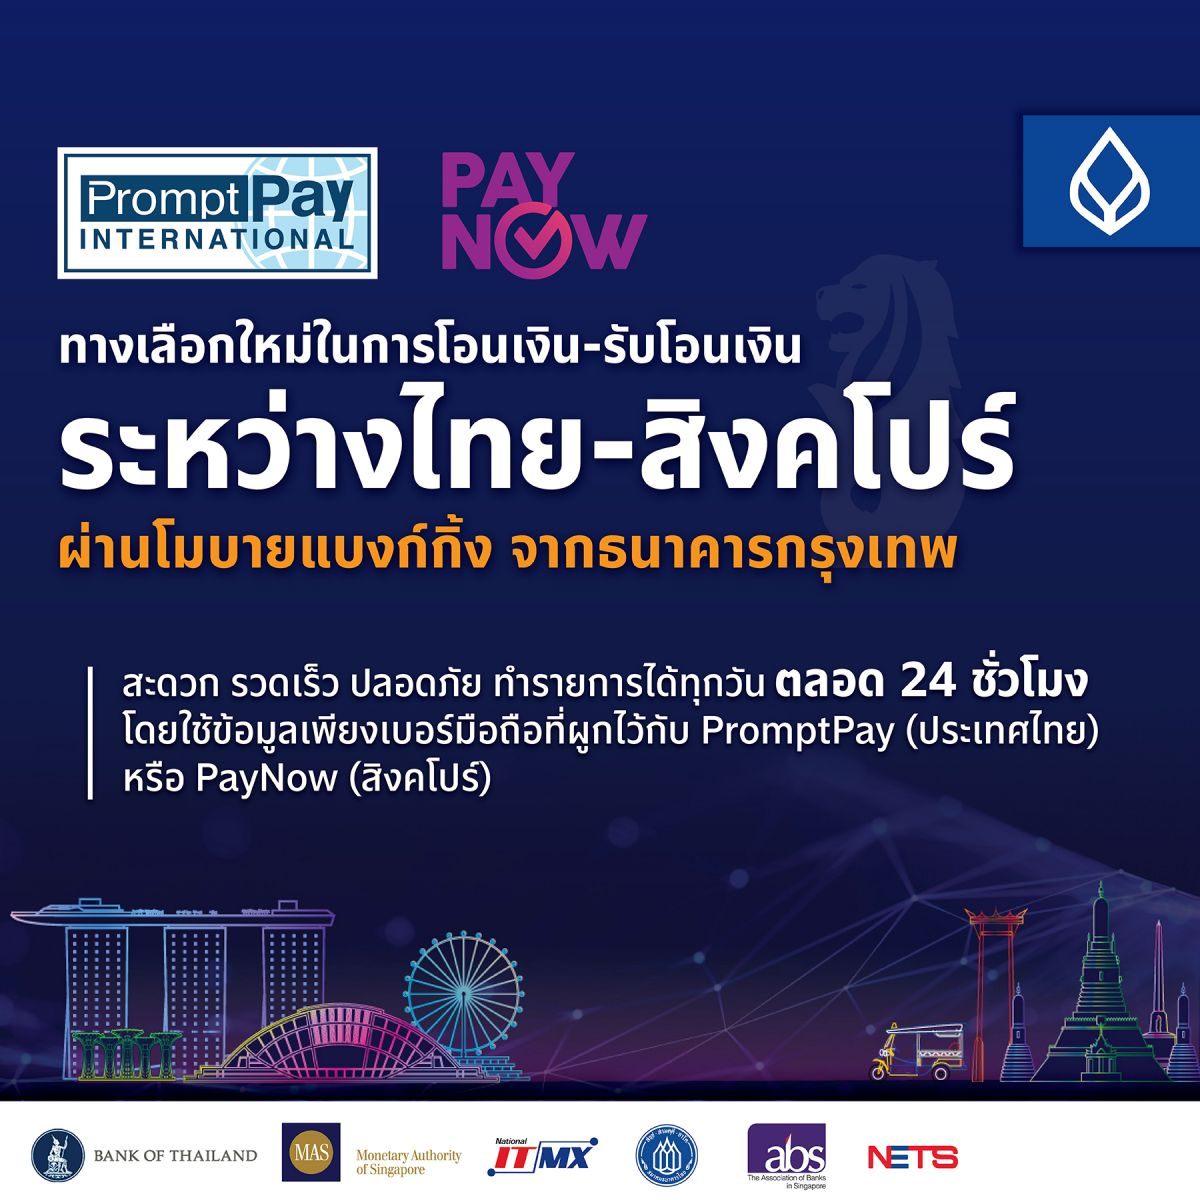 Bangkok Bank Pioneers Real-time Thai-Singapore Funds Transfer via PromptPay/PayNow